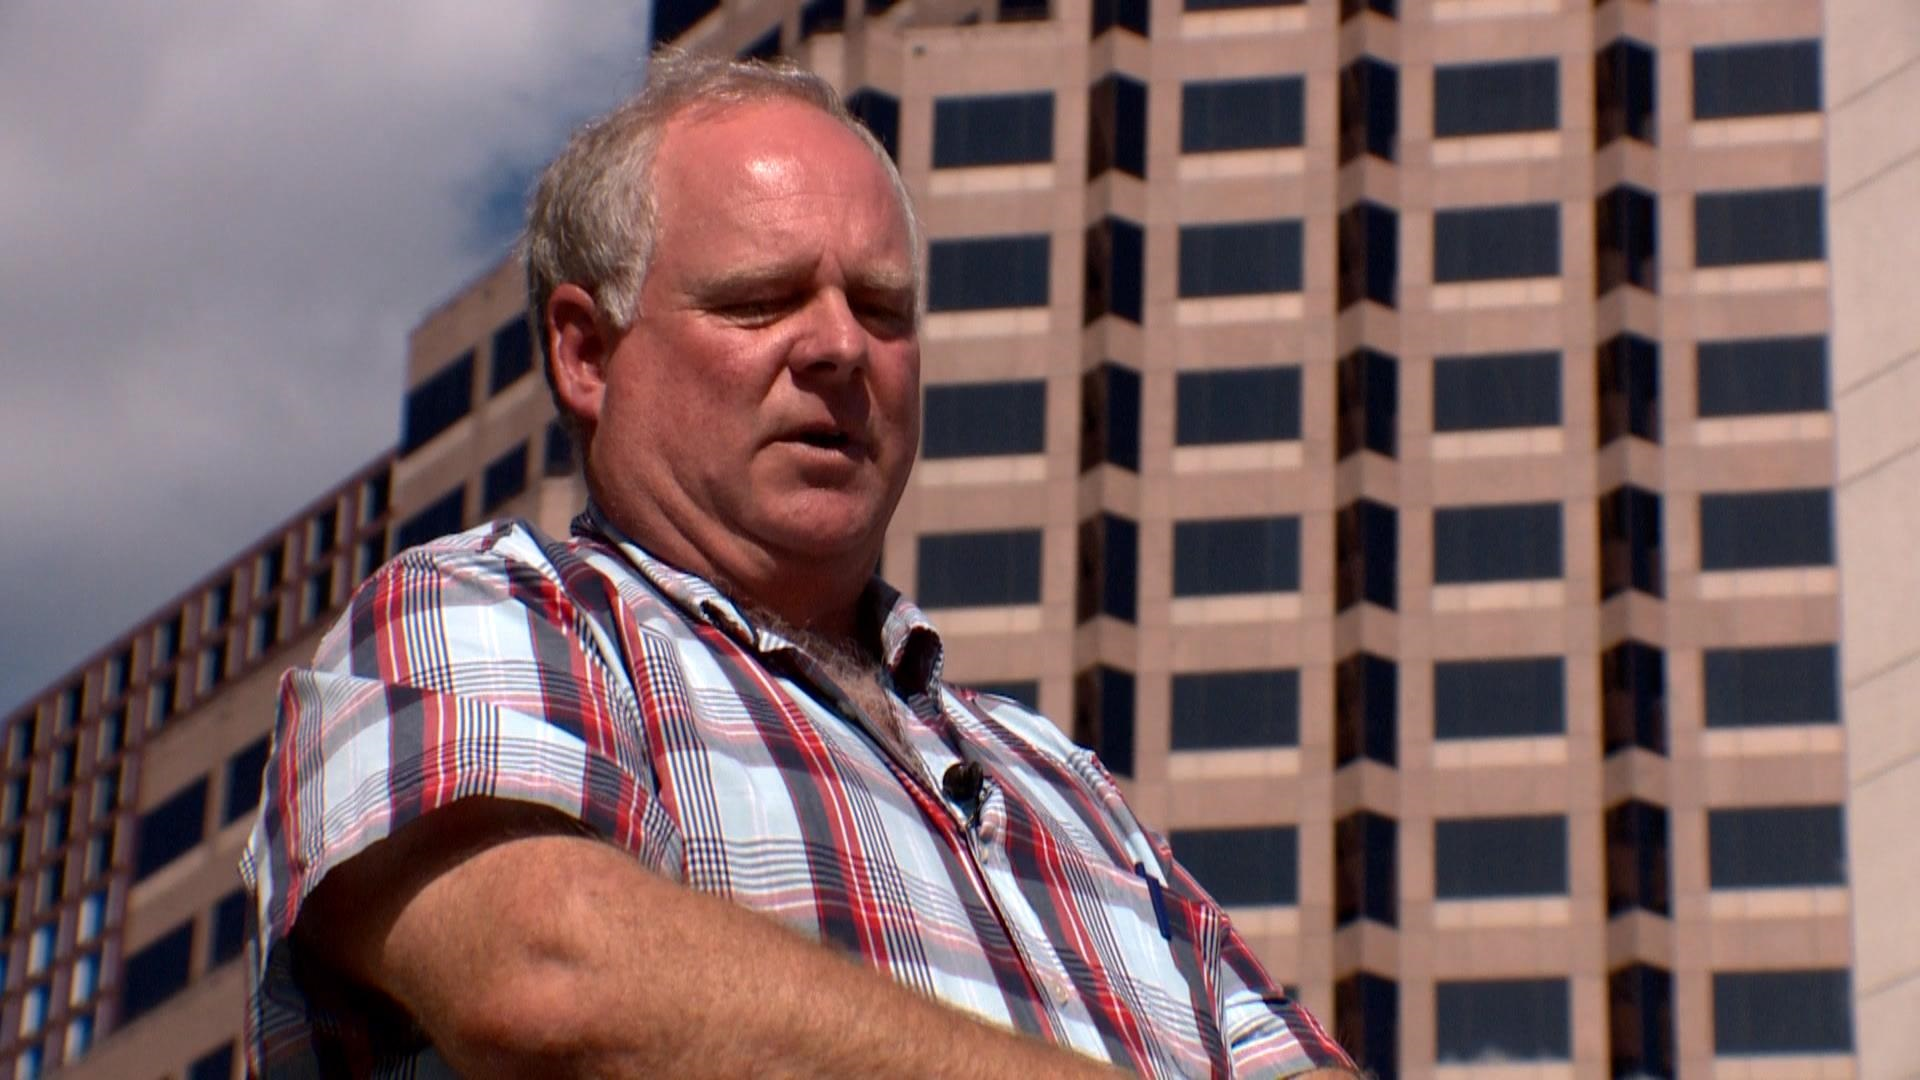 Roger Buchanan speaks with KXAN about the incident.